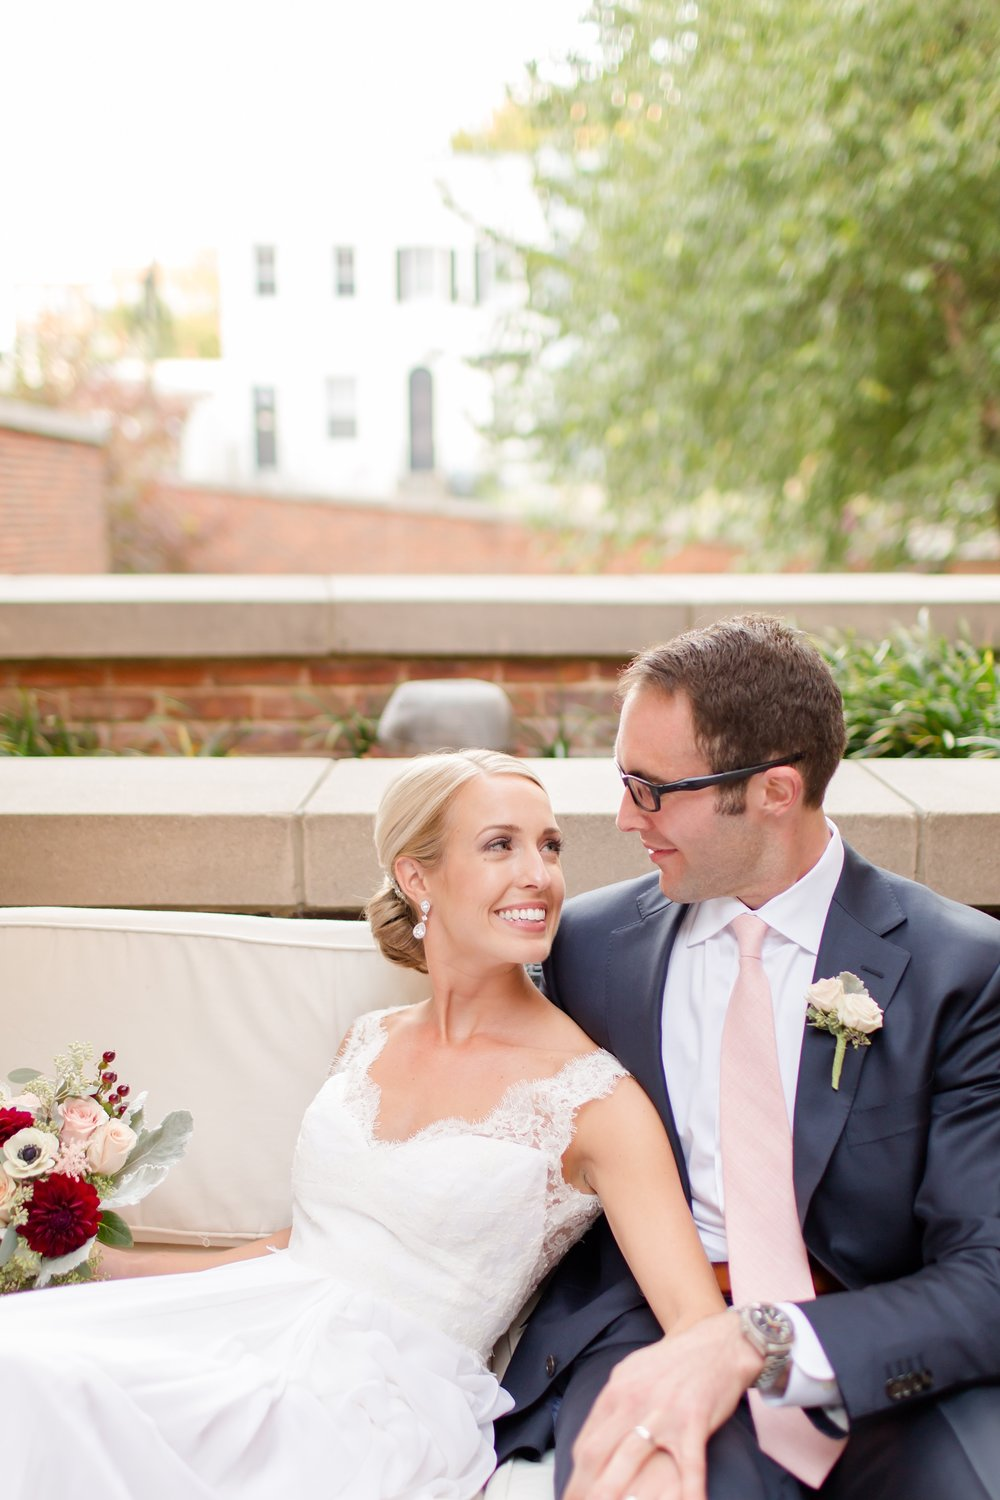 McAnelly 3. Bride & Groom Portraits-583_anna grace photography georgetown virginia wedding photographer ritz carlton wedding photo.jpg